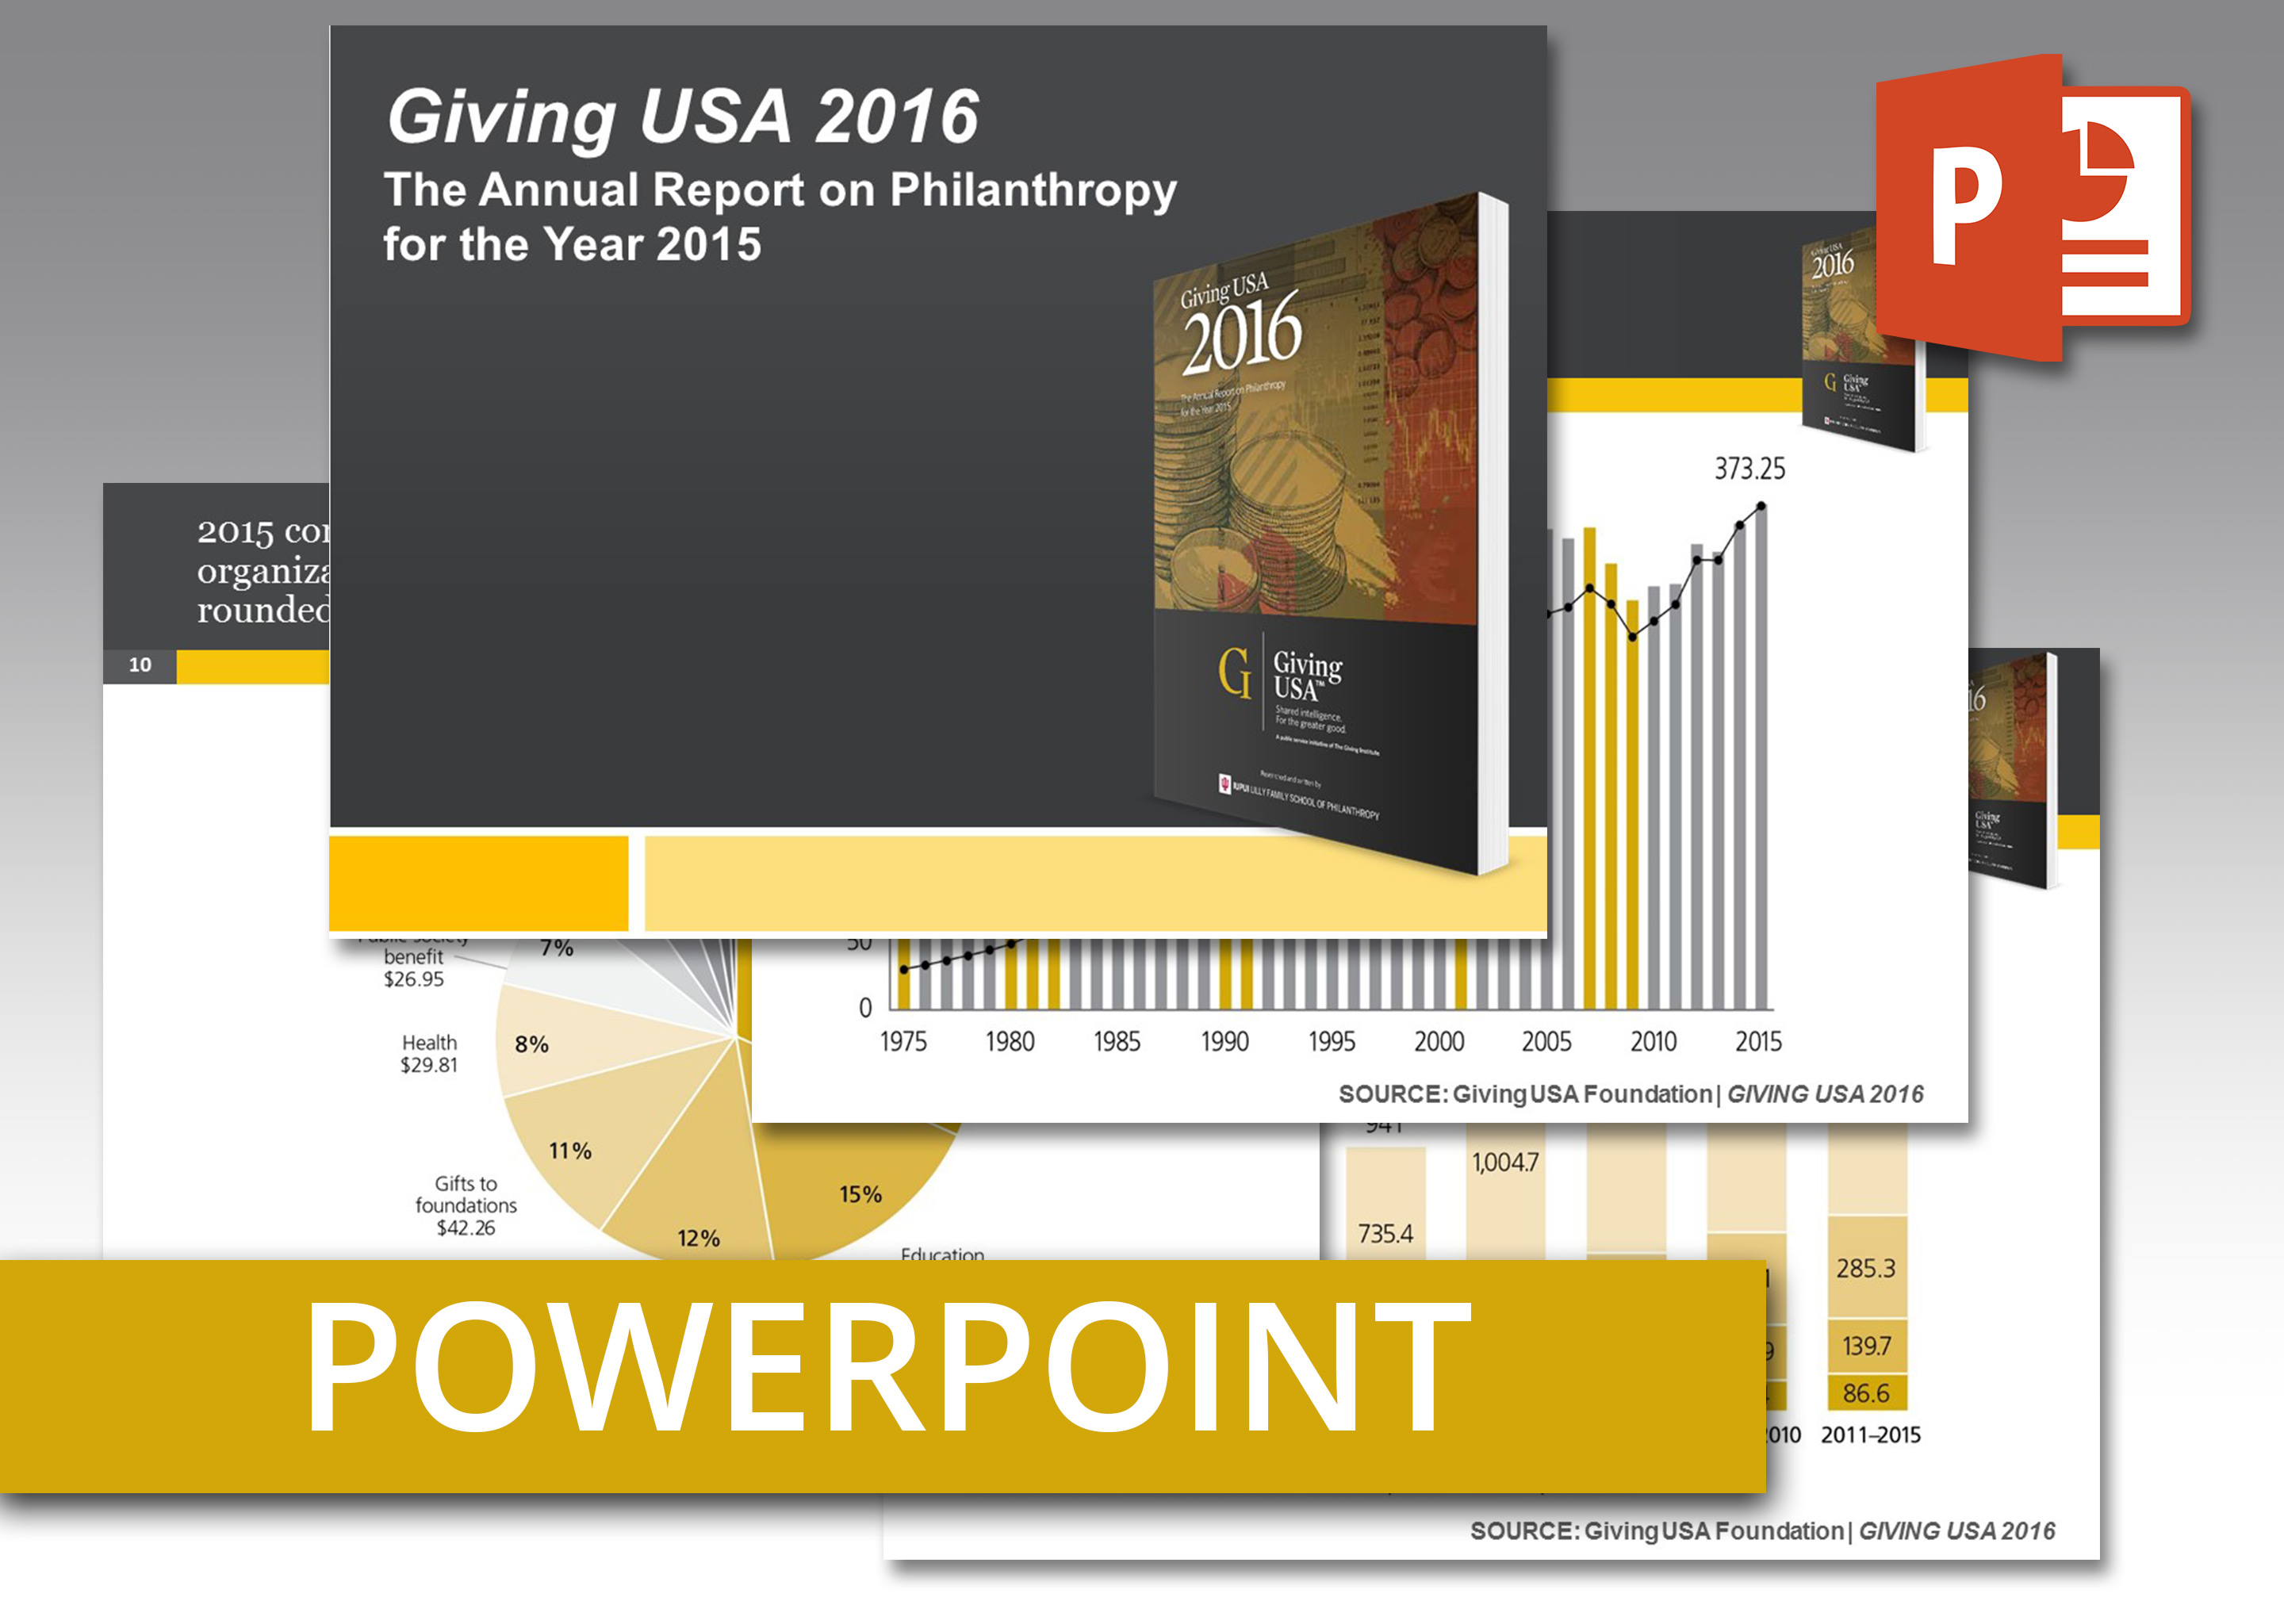 Coolmathgamesus  Surprising Giving Usa  Powerpoint An Easytouse Presentation Of Report  With Fascinating Giving Usa  Powerpoint An Easytouse Presentation Of Report Findings Including Talking Points With Divine Fractured Fairy Tales Powerpoint Also Our Solar System Powerpoint In Addition Pdf To Ms Powerpoint Converter Online And Top  Powerpoint Templates As Well As Download Microsoft Powerpoint  Full Version Additionally Video With Powerpoint From Givingusaorg With Coolmathgamesus  Fascinating Giving Usa  Powerpoint An Easytouse Presentation Of Report  With Divine Giving Usa  Powerpoint An Easytouse Presentation Of Report Findings Including Talking Points And Surprising Fractured Fairy Tales Powerpoint Also Our Solar System Powerpoint In Addition Pdf To Ms Powerpoint Converter Online From Givingusaorg